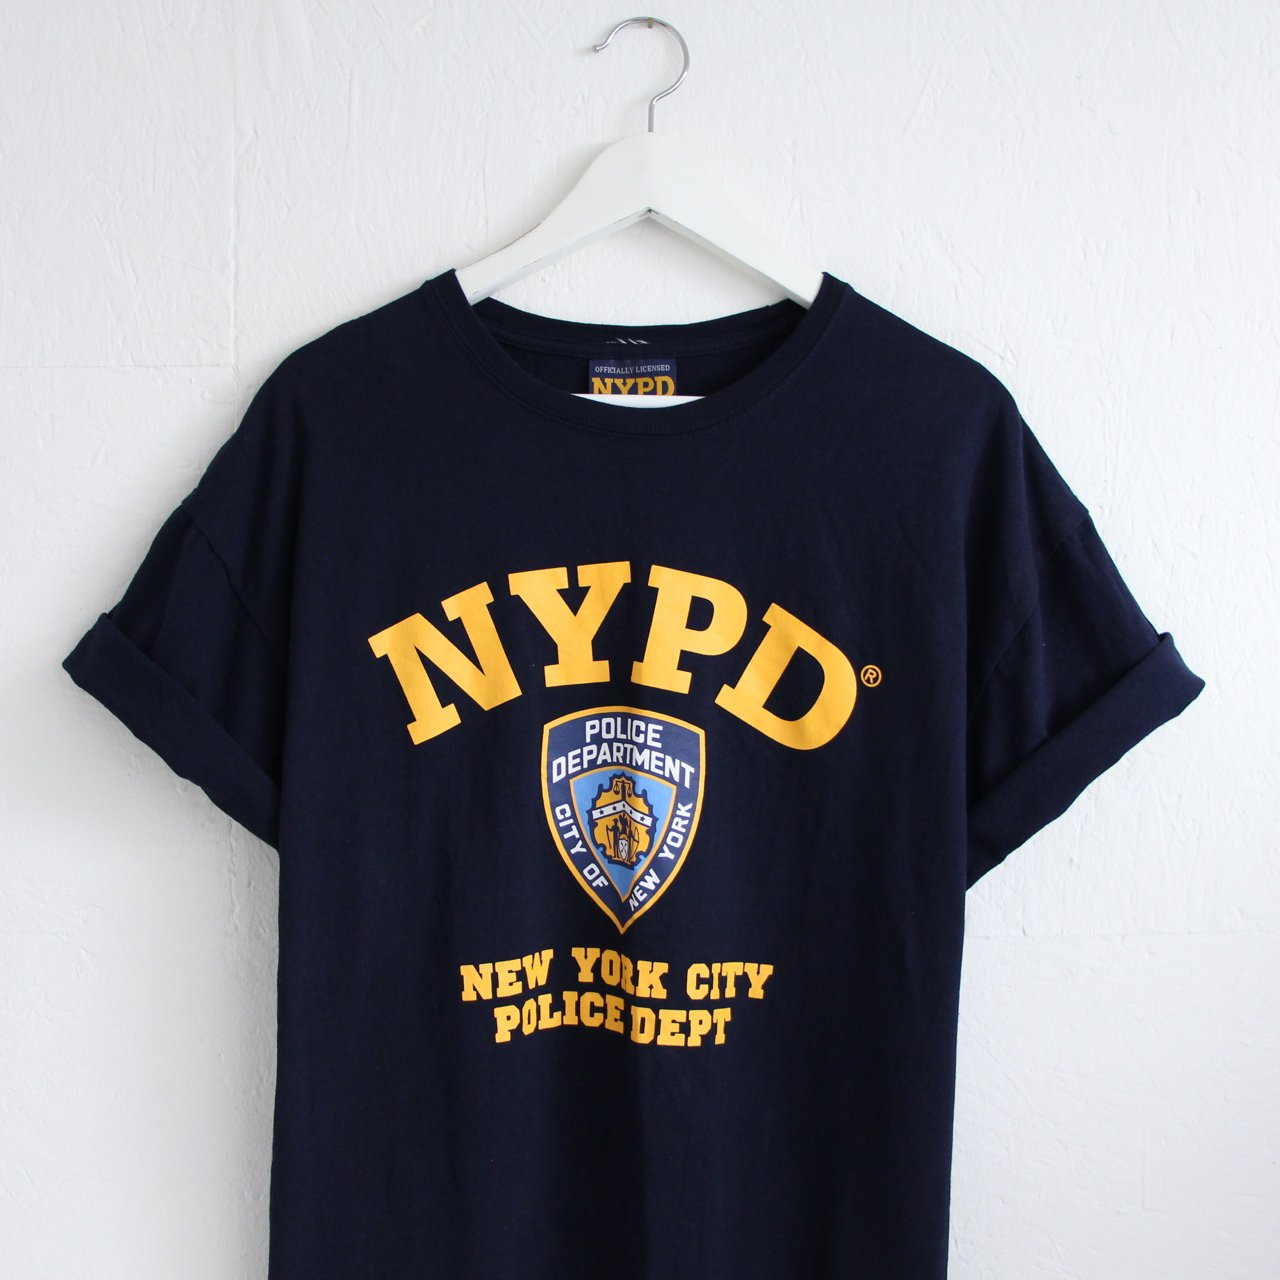 0a681dd22 Vintage retro 90s dark navy NYPD tshirt • men's XL • great • - Depop